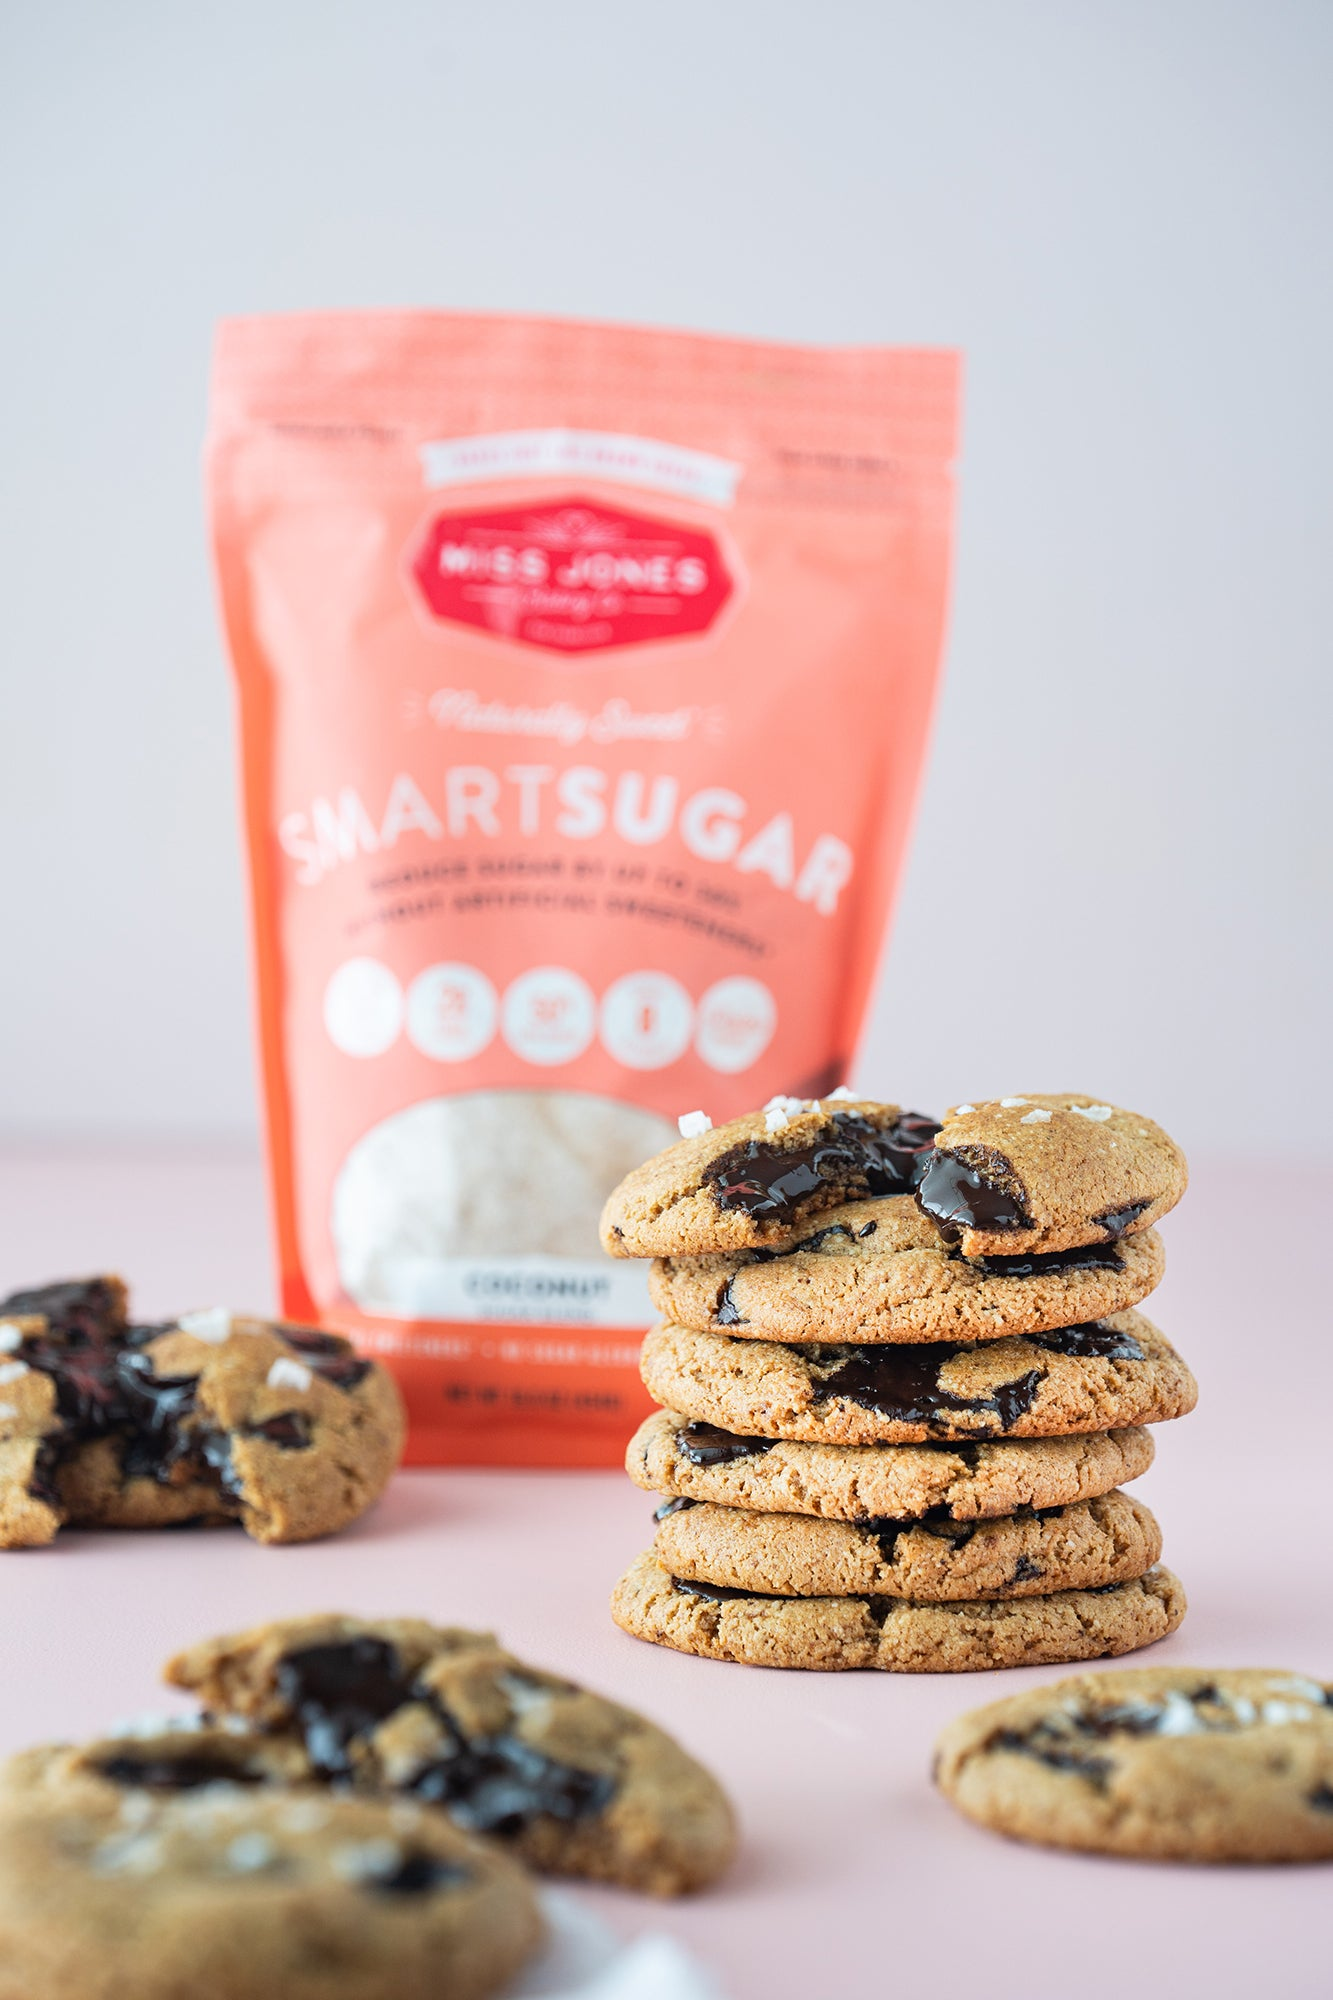 Image of stacked Miss Jones Baking Co Paleo Chocolate Chip Cookies in front of a bag of SmartSugar Coconut Sugar Blend